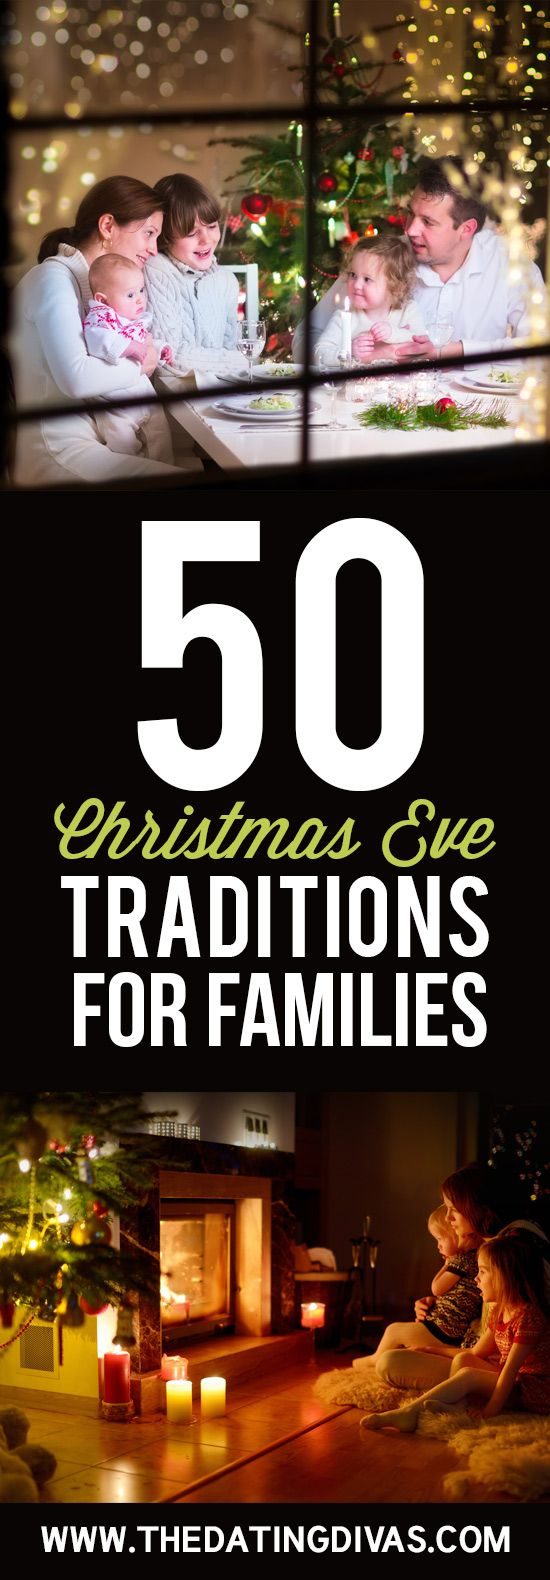 50 Christmas Eve tradition ideas for families. I totally want to try some of these with my family this year! Ideas include games, activities, service ideas and even ways to focus on Christ!